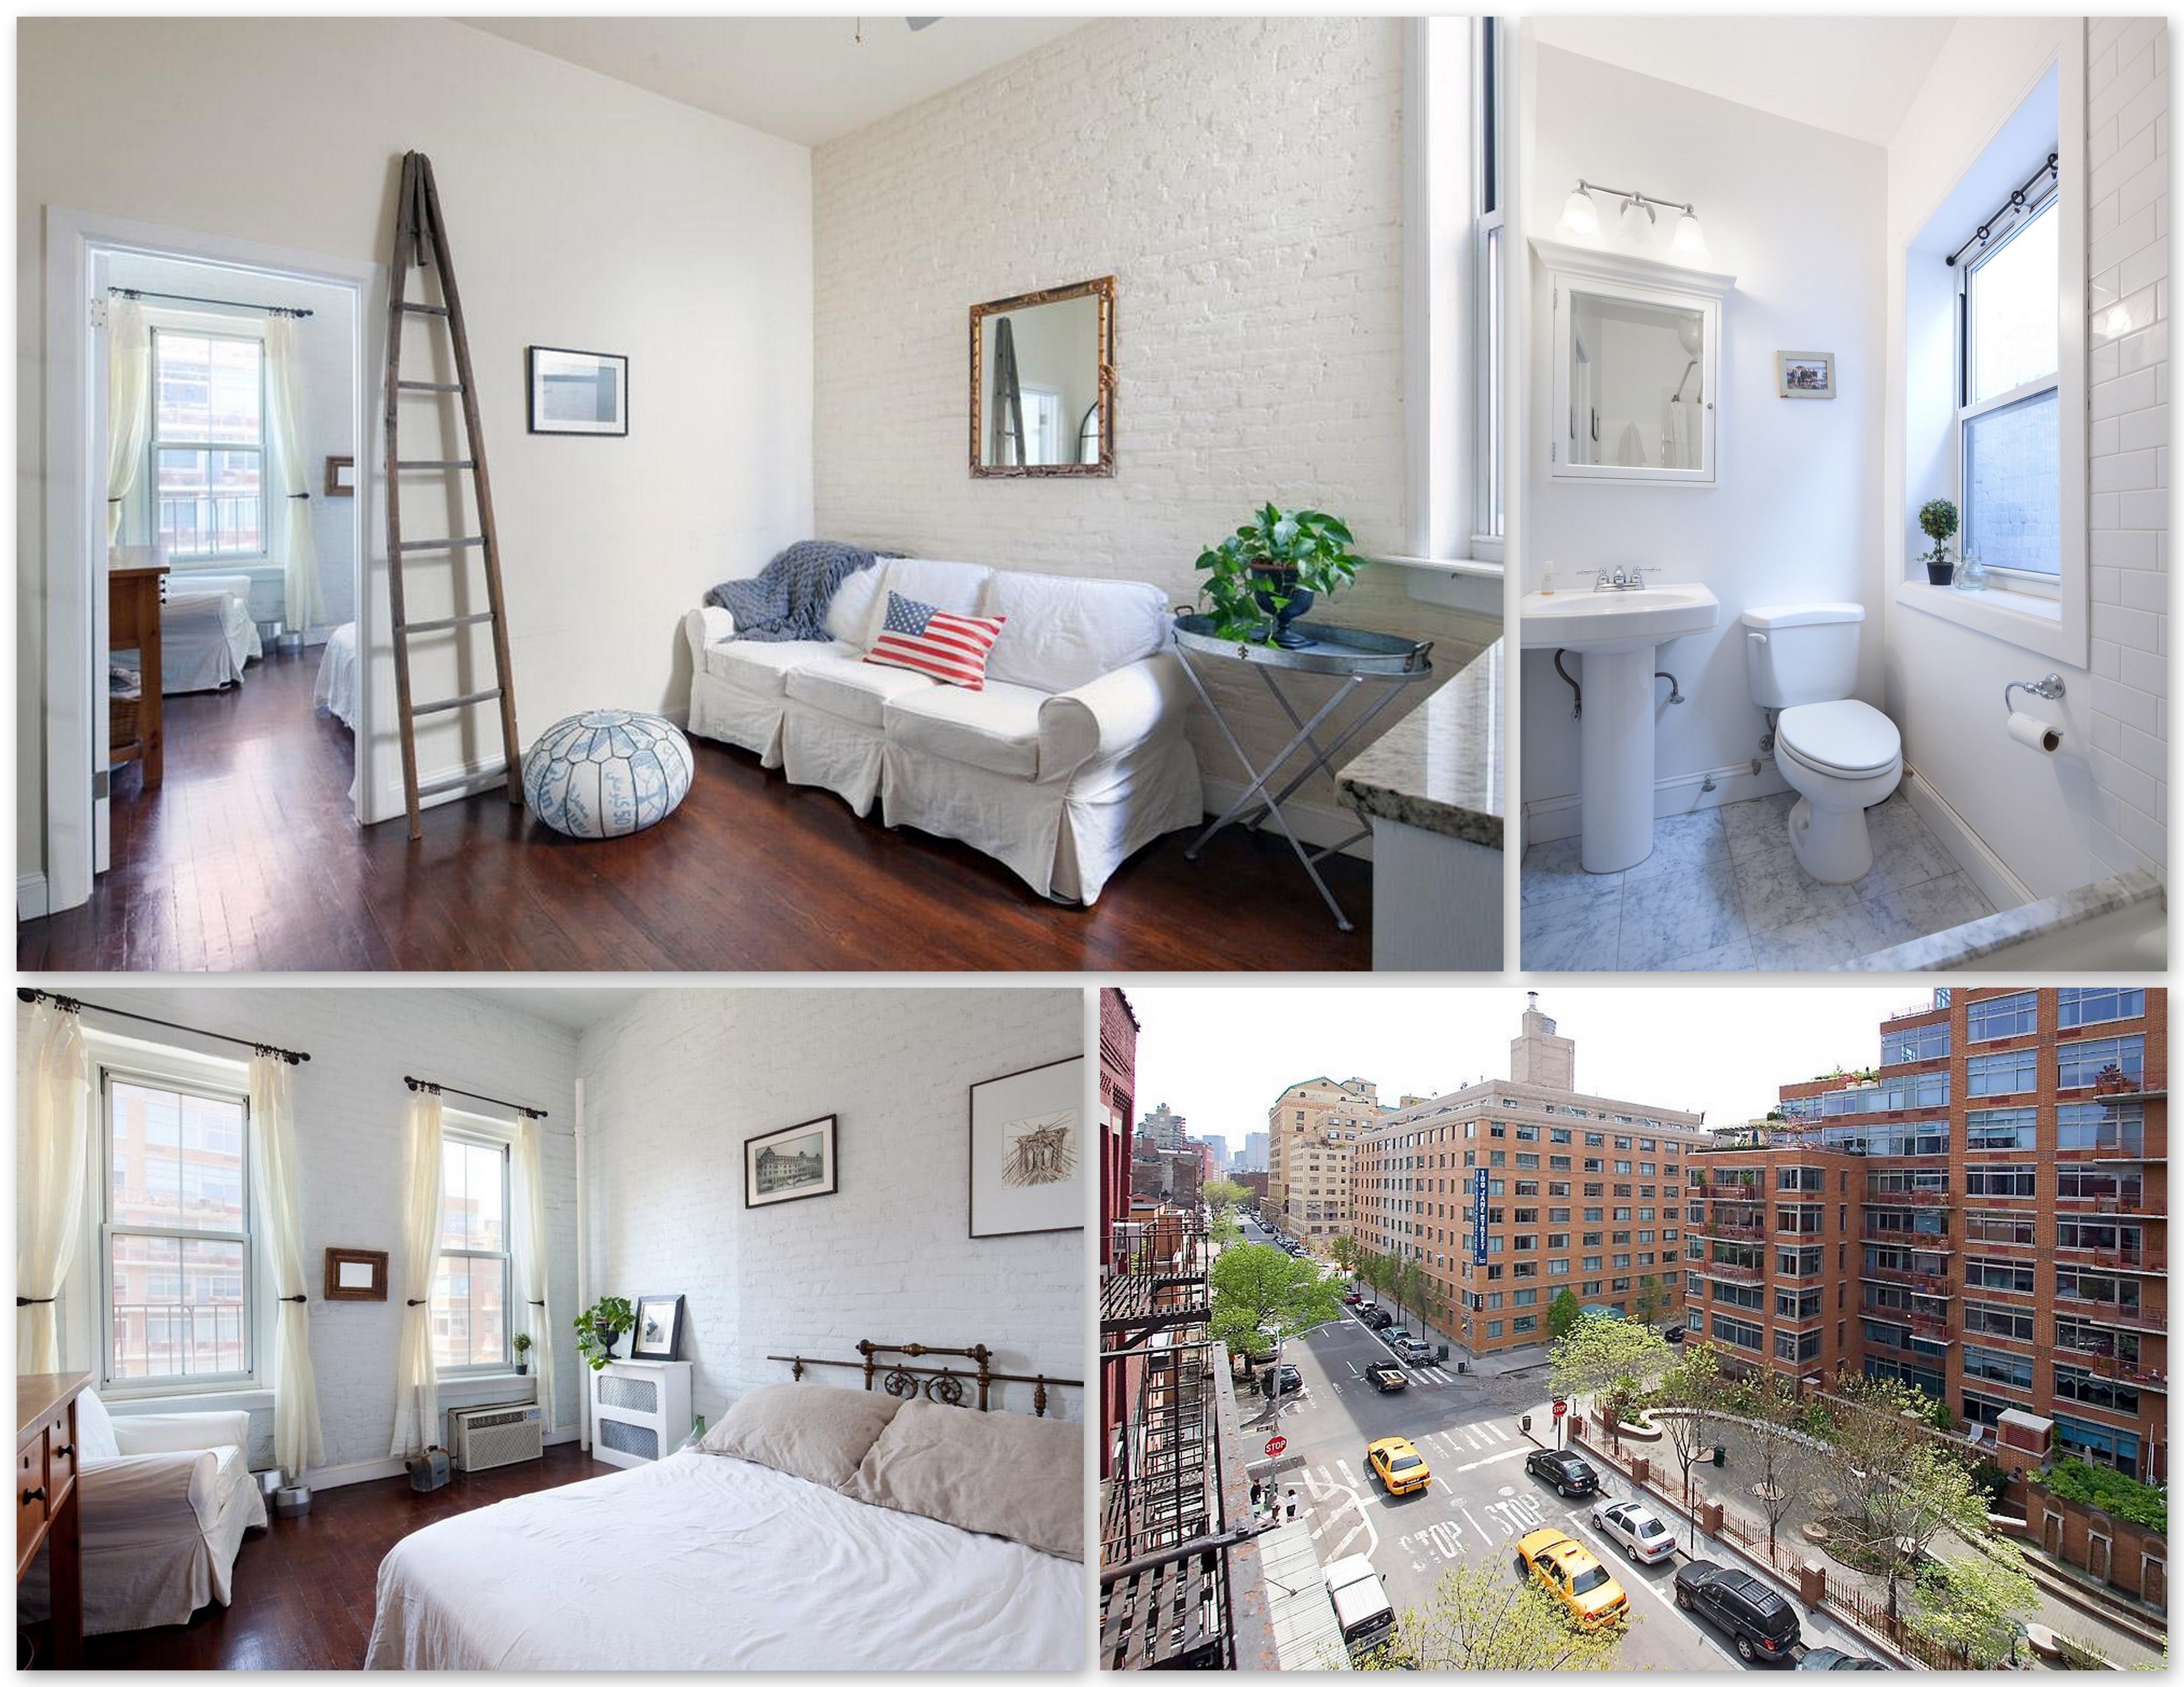 $2800 Horatio Street, West Village NYC: Sun-filled, triple ...